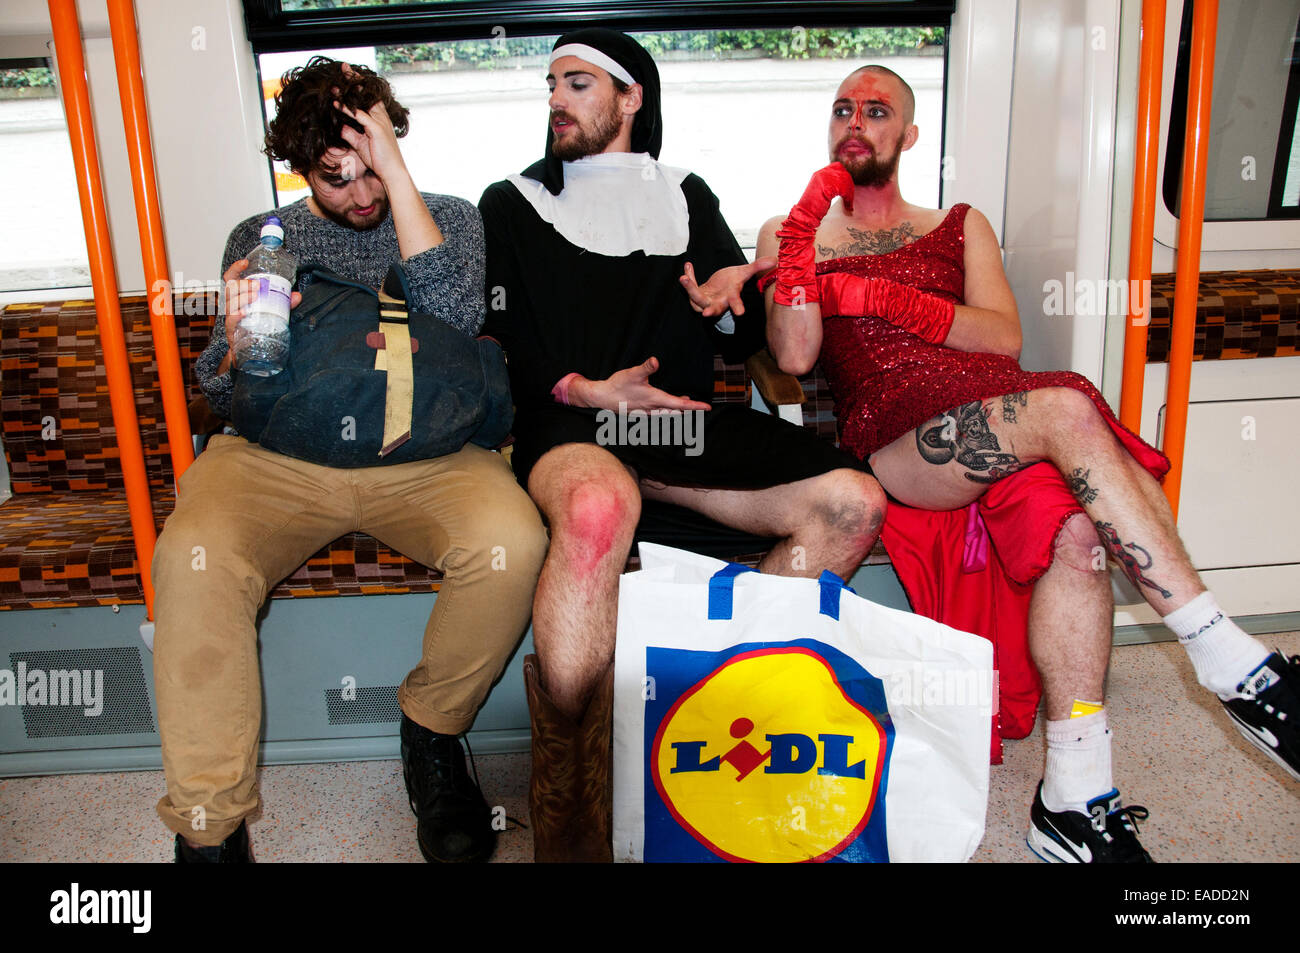 London Overground. Post Halloween party goers one in a nun's habit, another in a red dress return home after - Stock Image